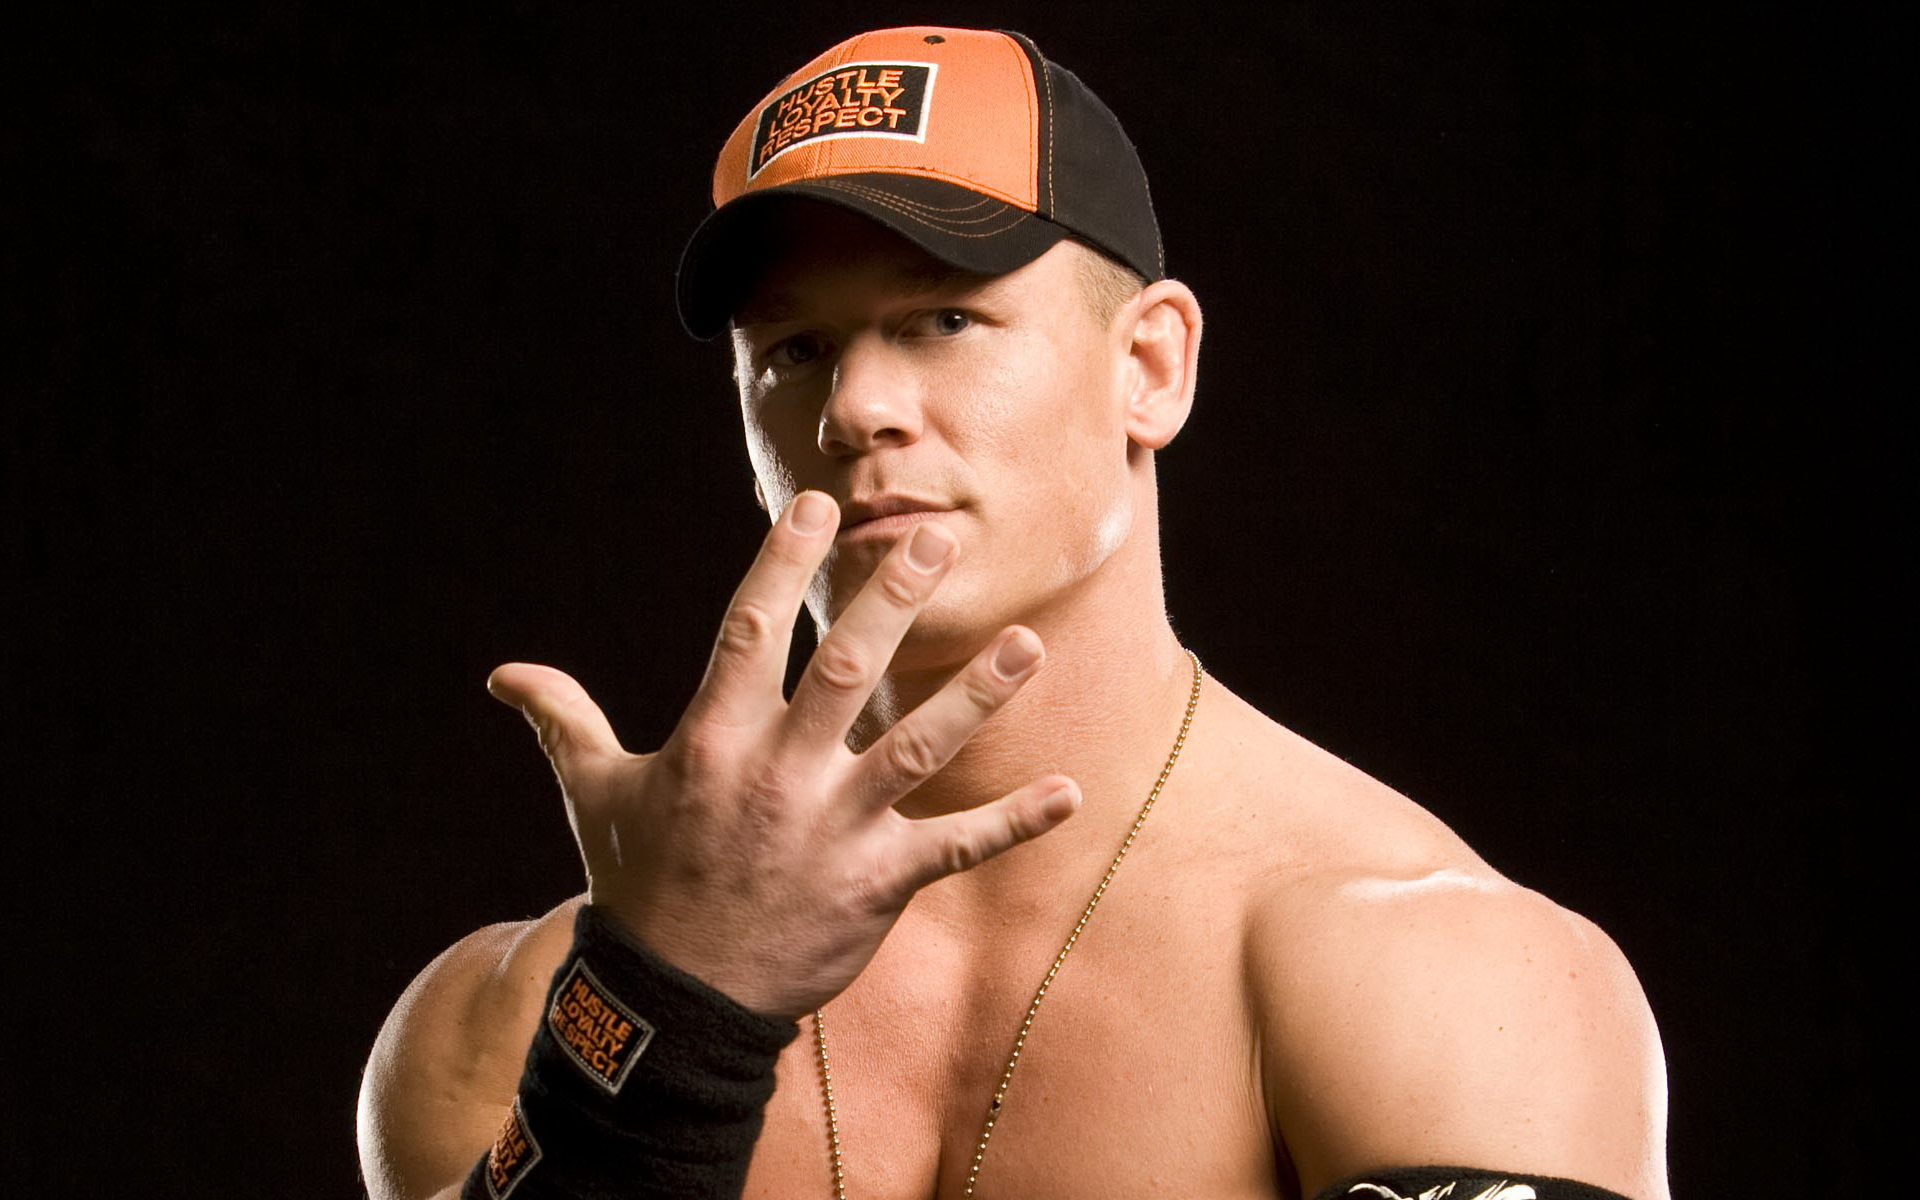 john cena wallpapers high quality | download free